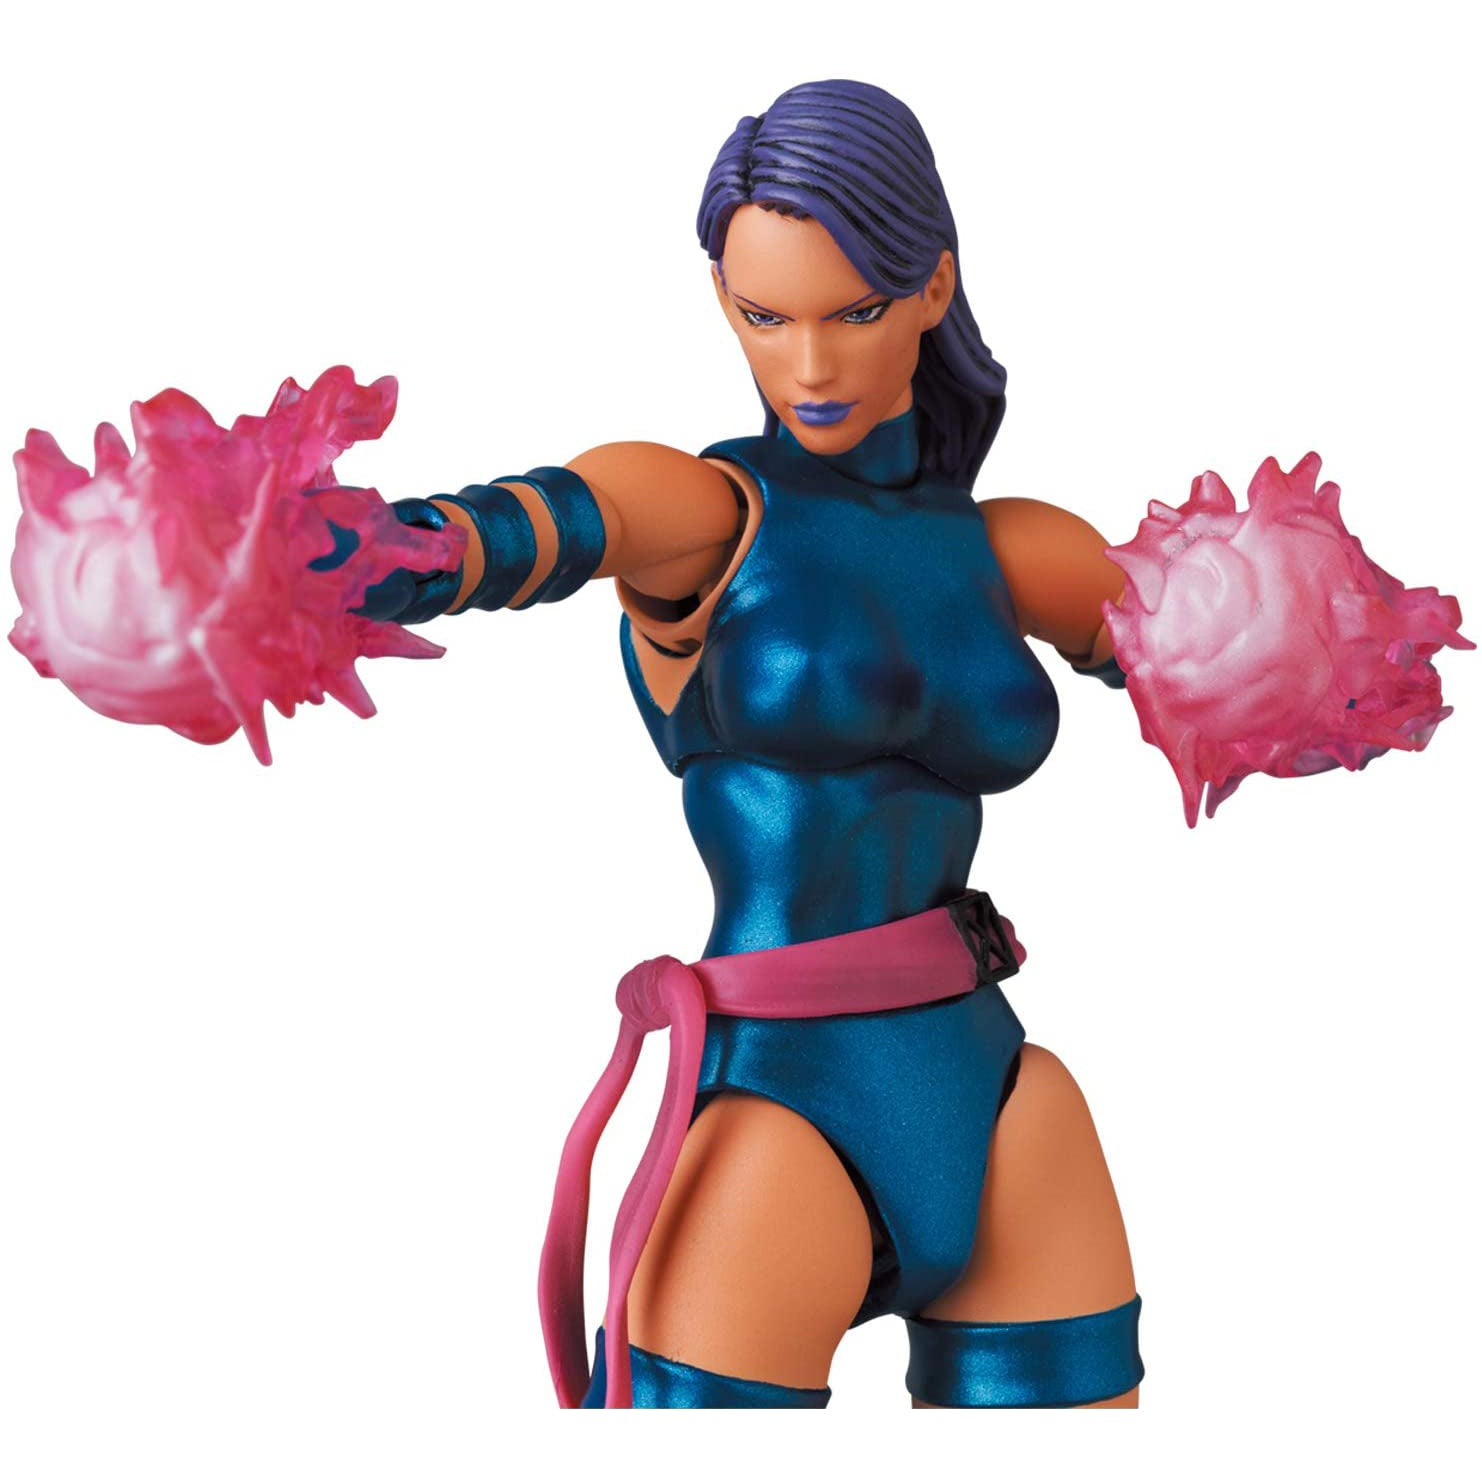 Medicom - MAFEX No. 141 - Marvel's X-Men - Psylocke (Comic Ver.)